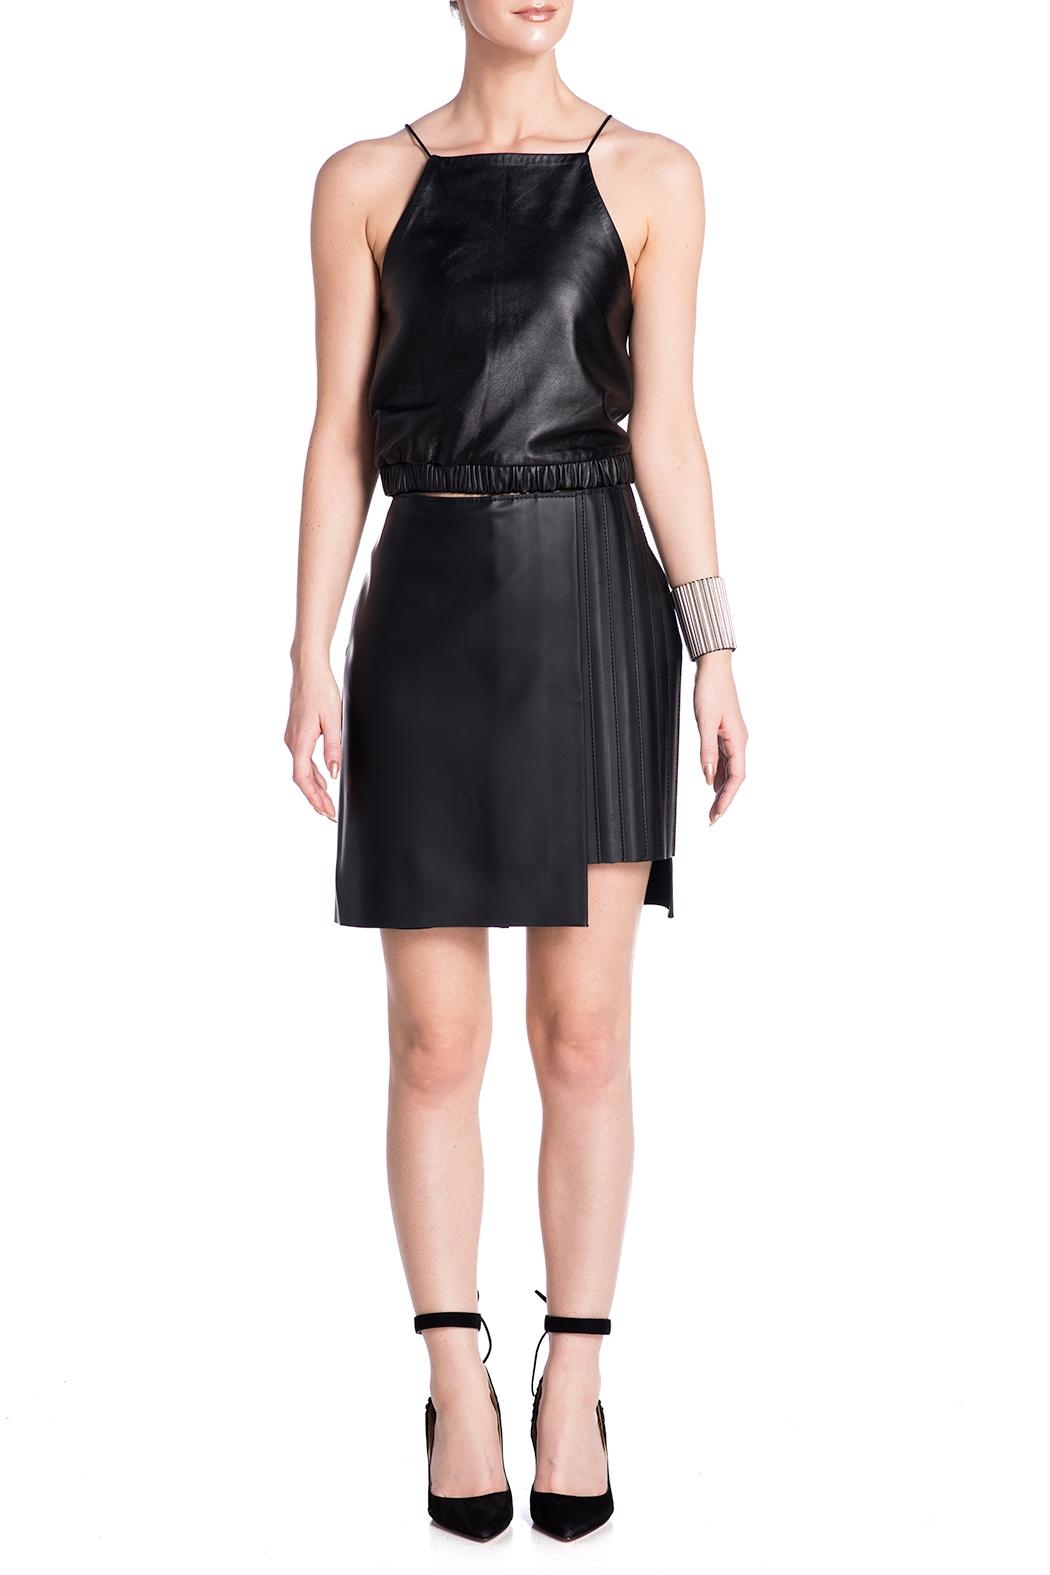 Charlie May Rubberized Leather Skirt - Front Full Image